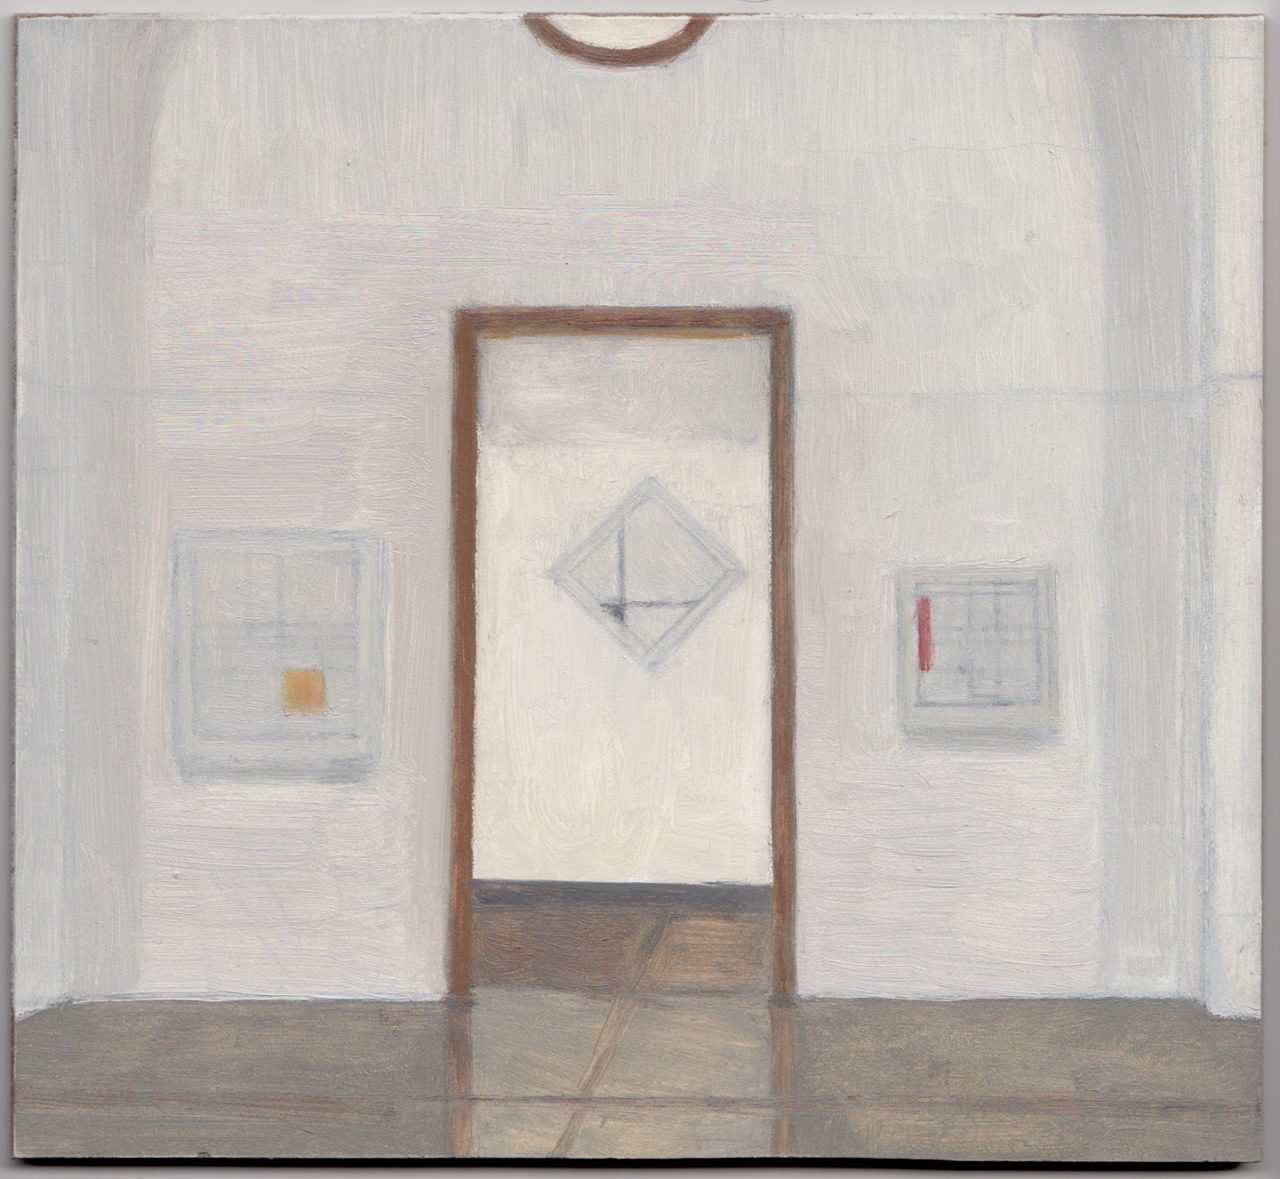 Eleanor Ray | Mondrian Room, 2016